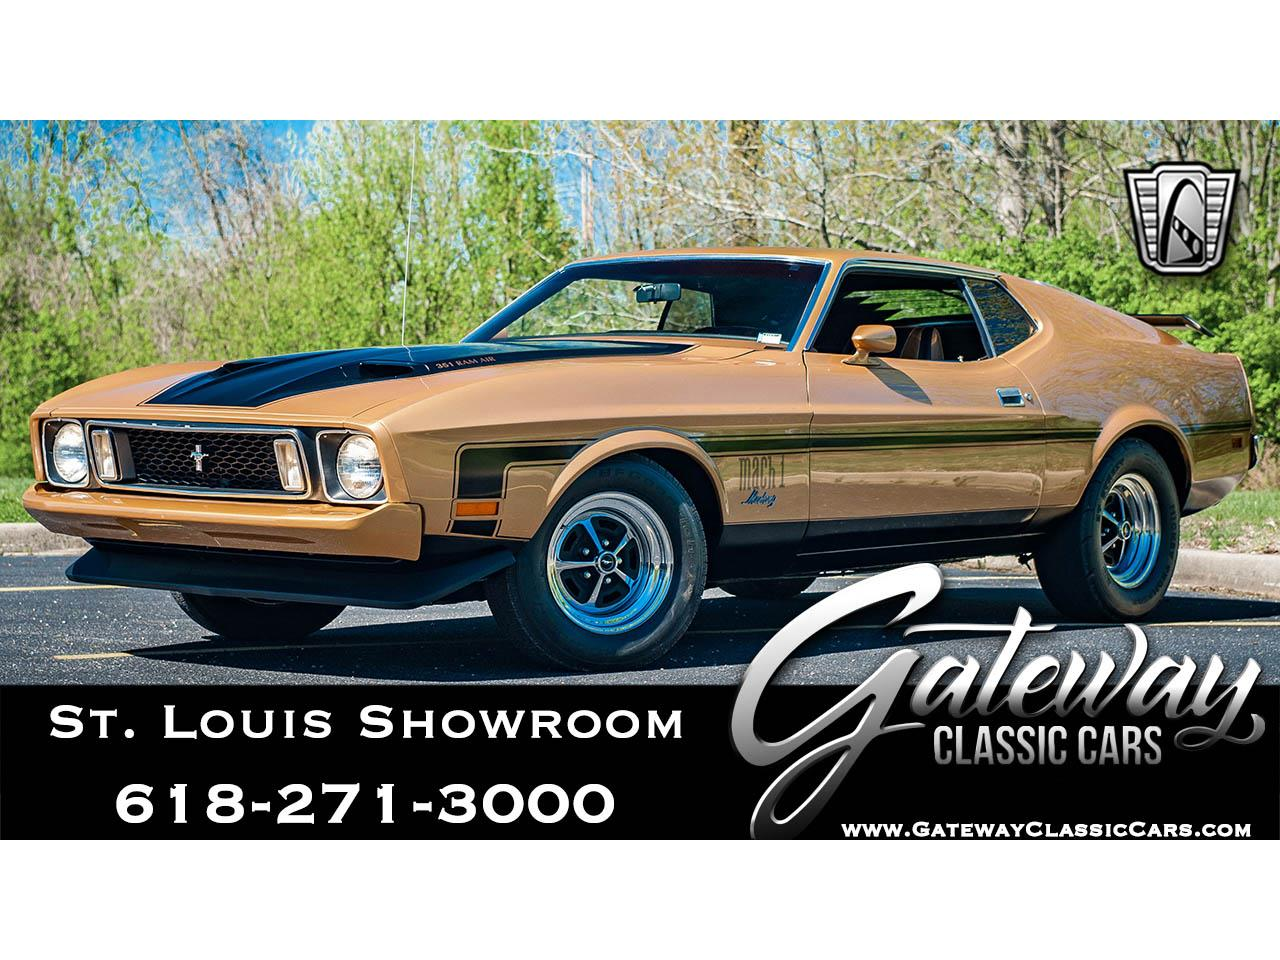 Large Picture of 1973 Mustang located in O'Fallon Illinois - $34,500.00 - QB8T